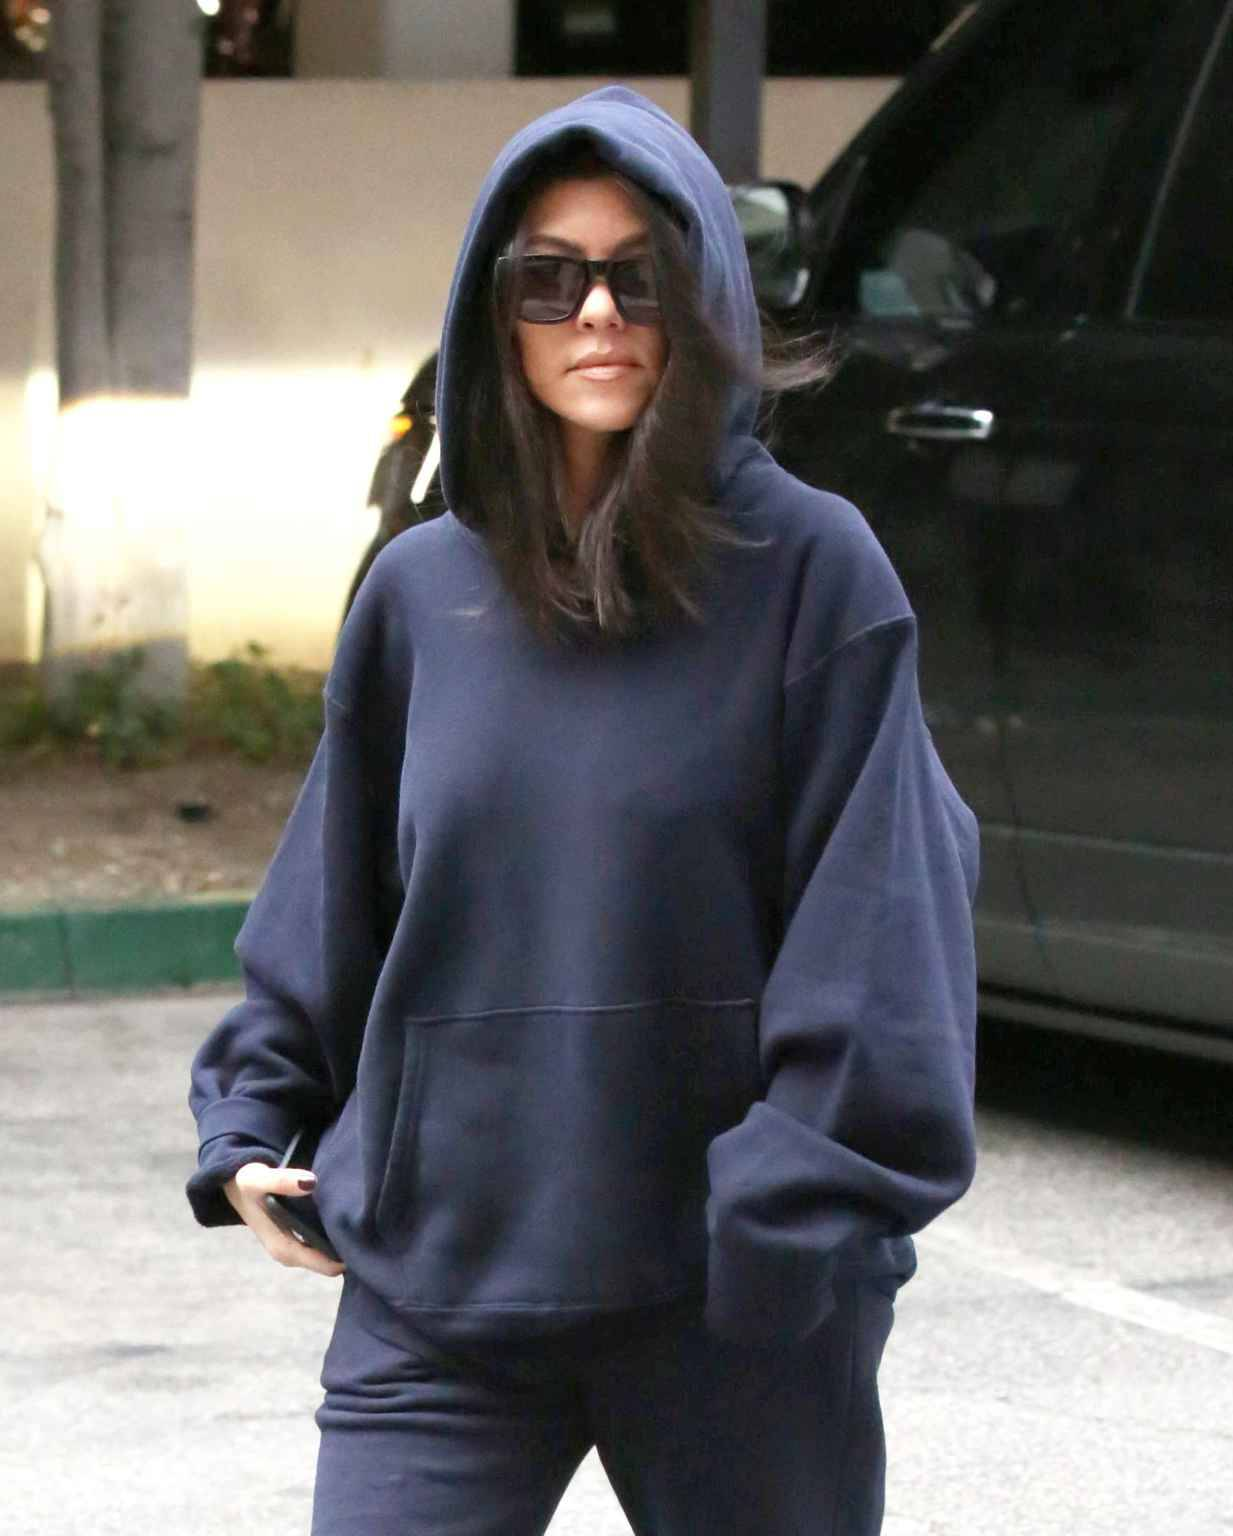 Wednesday, February 20, 2019 - Kourtney Kardashian tries to go under the radar in a navy hoodie and sunglasses as she steps out with son Mason in Calabasas amid Tristan Thompson\'s cheating scandal. The Kardashian Klan is undergoing damage control after Khloe Kardashian\'s NBA baller fiance admitted to cheating on her with Kylie Jenner\'s 21-year-old bestie, Jordyn Woods. 9-year-old Mason must look up to Kylie\'s beau Travis Scott because he was sporting a $185 Travis Scott AstroWorld \'Look Mom I Can Fly